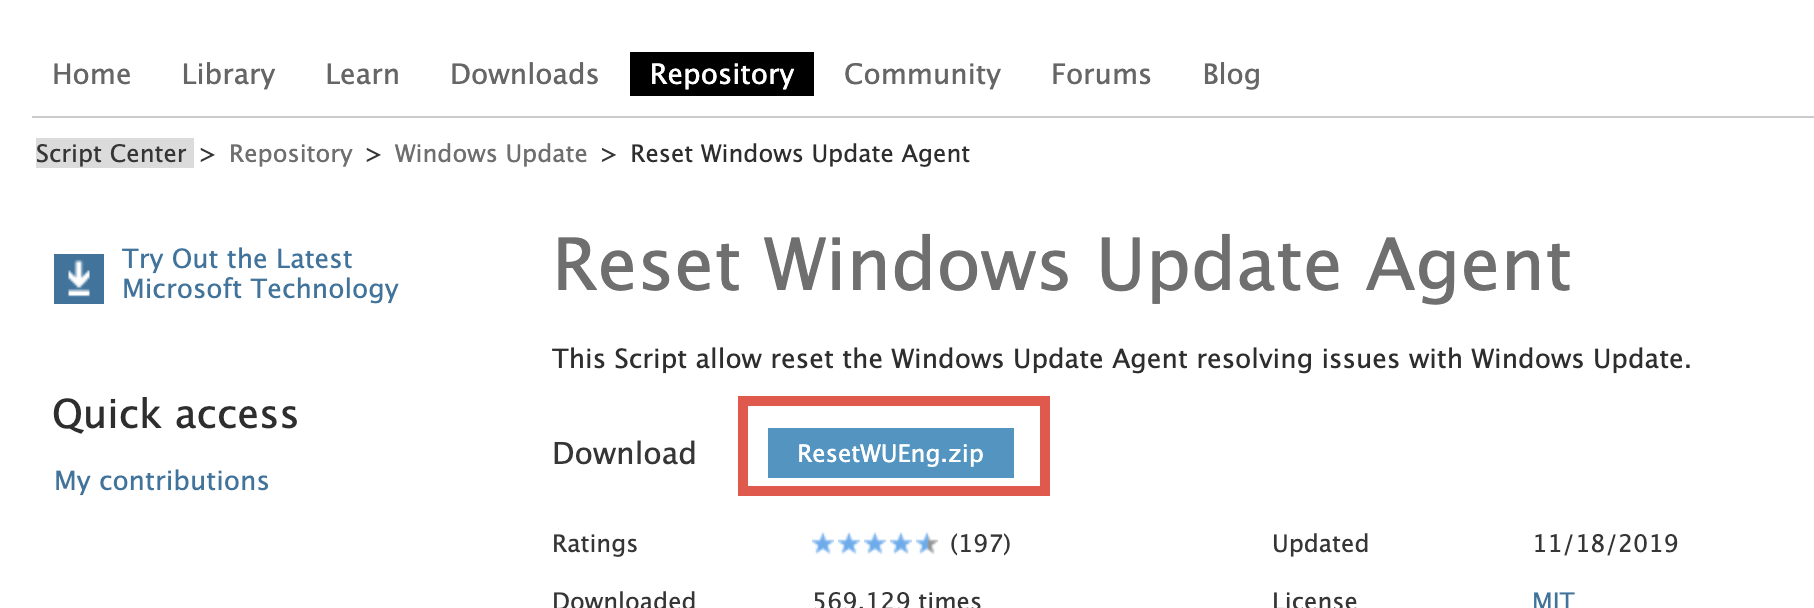 Click on the button labeled with ResetWUEng.zip to download the Reset Windows Update agent.